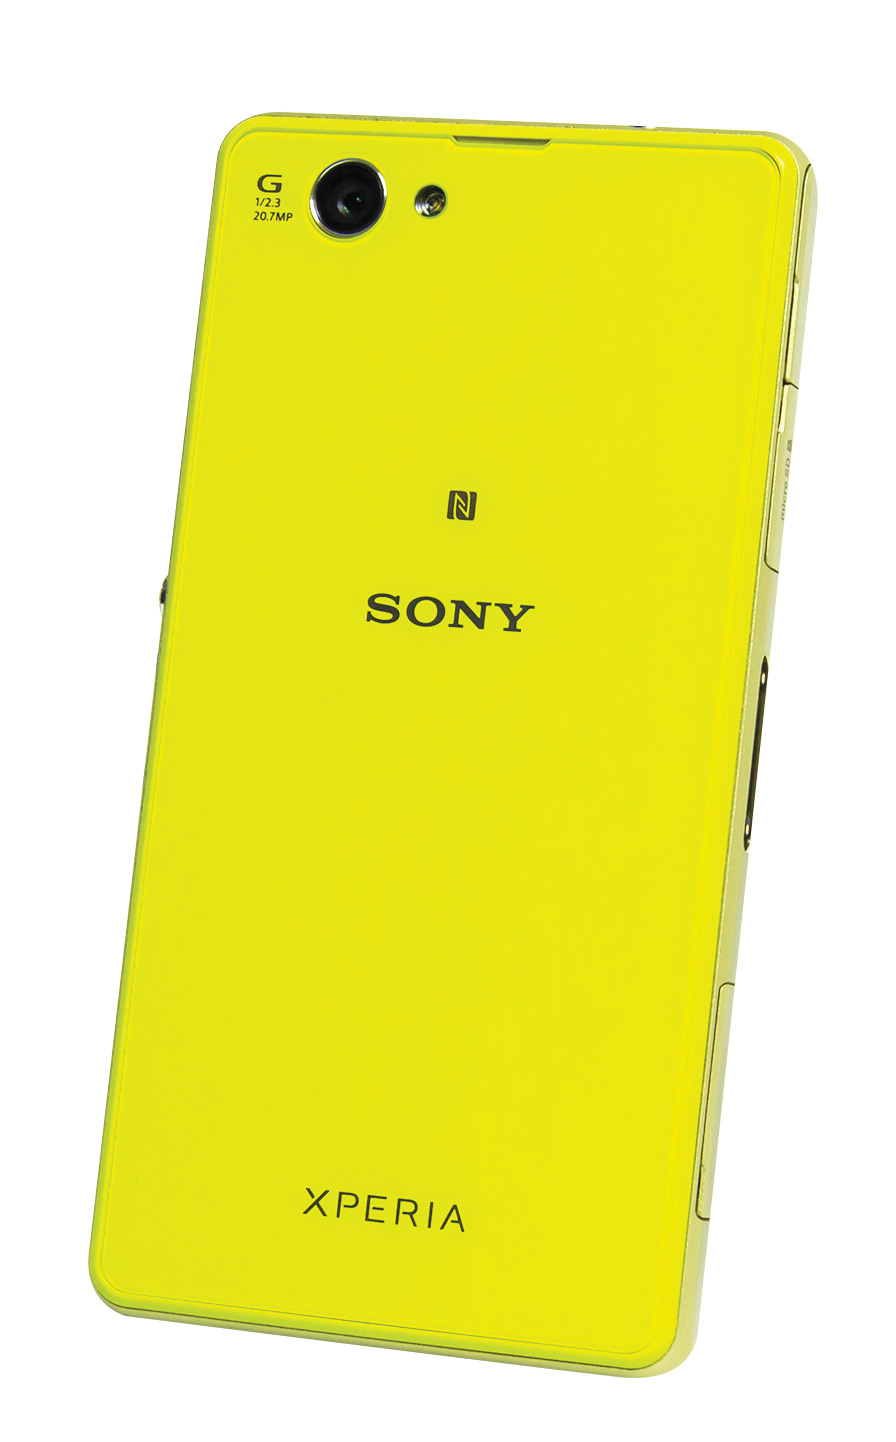 Sony Xperia Z1 Compact 14